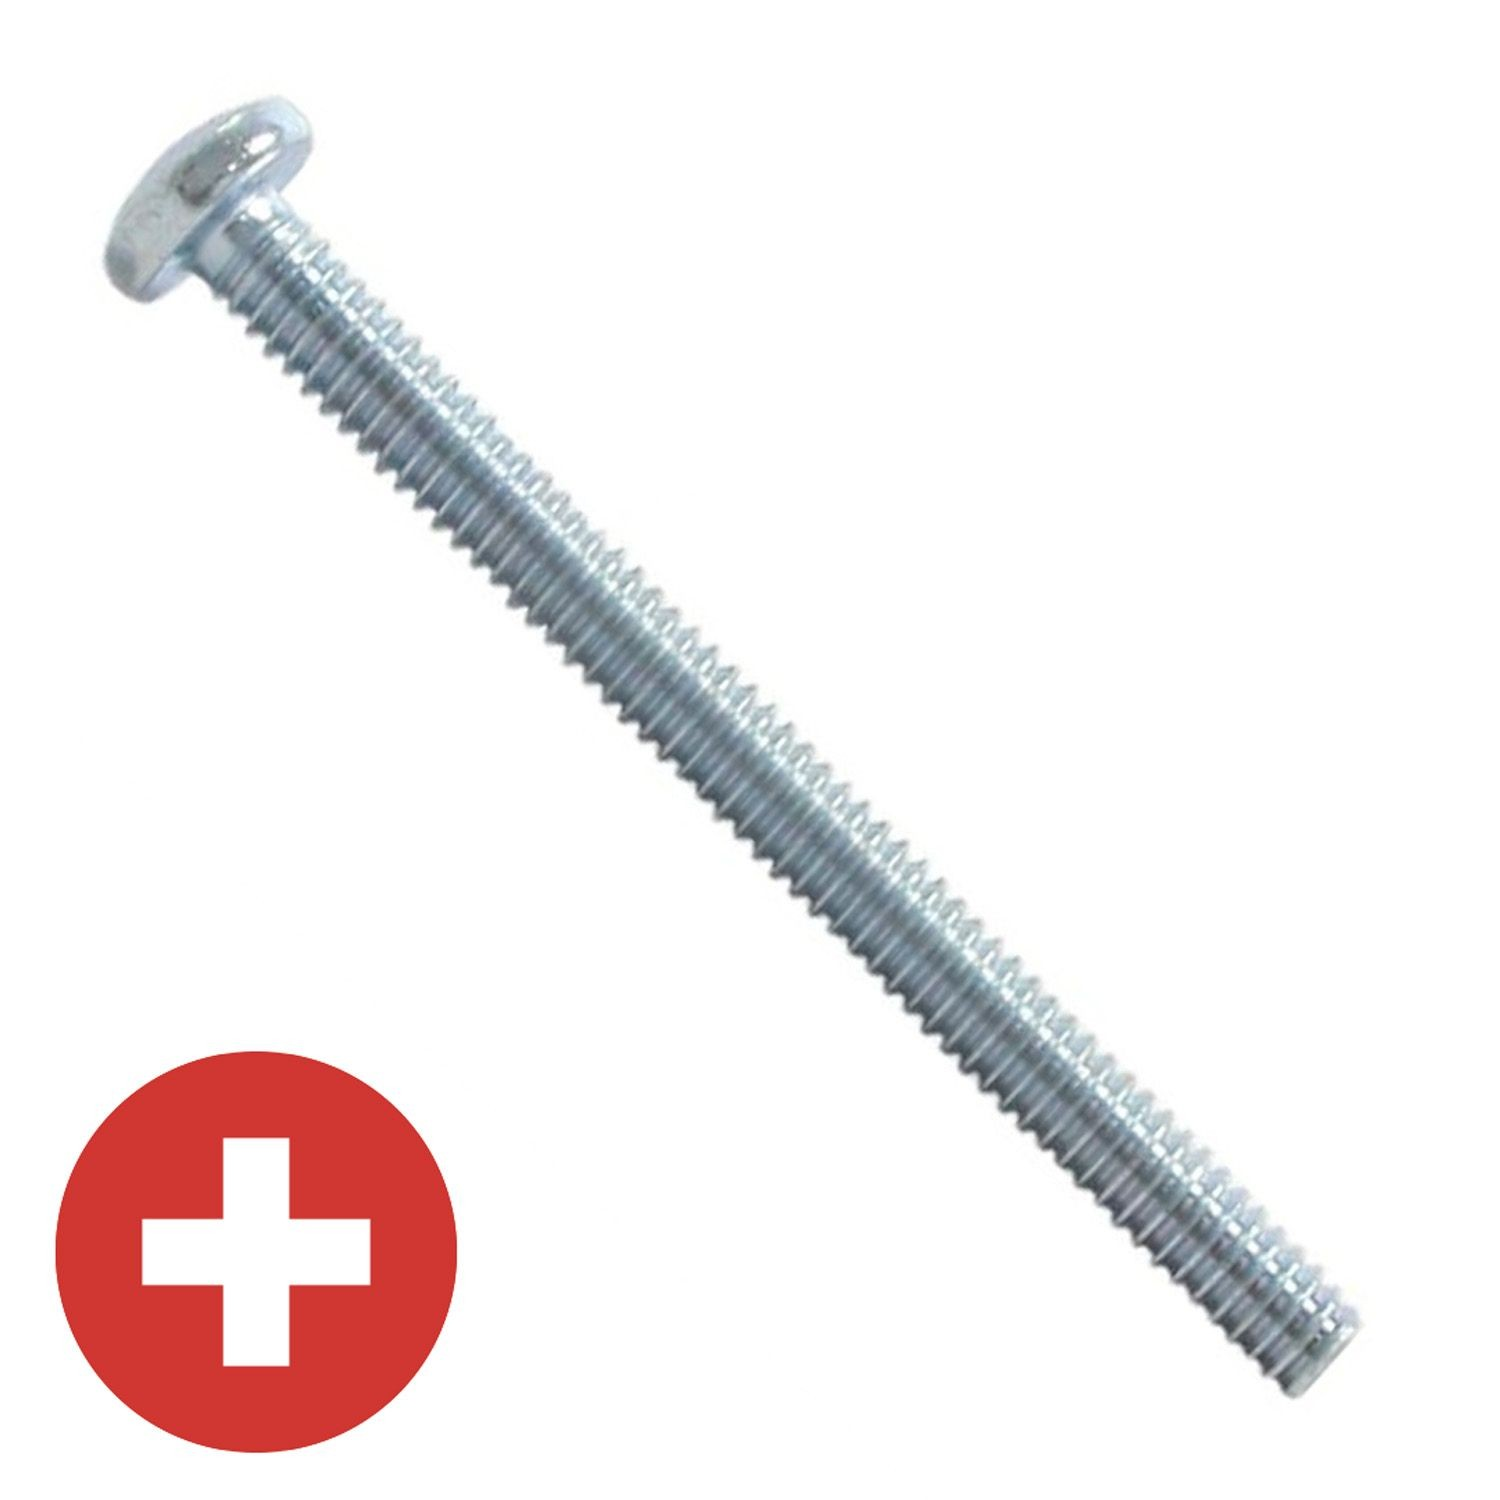 "#10-24 x 1-1/4"" Zinc Plated Phillips Pan Head Machine Screw"